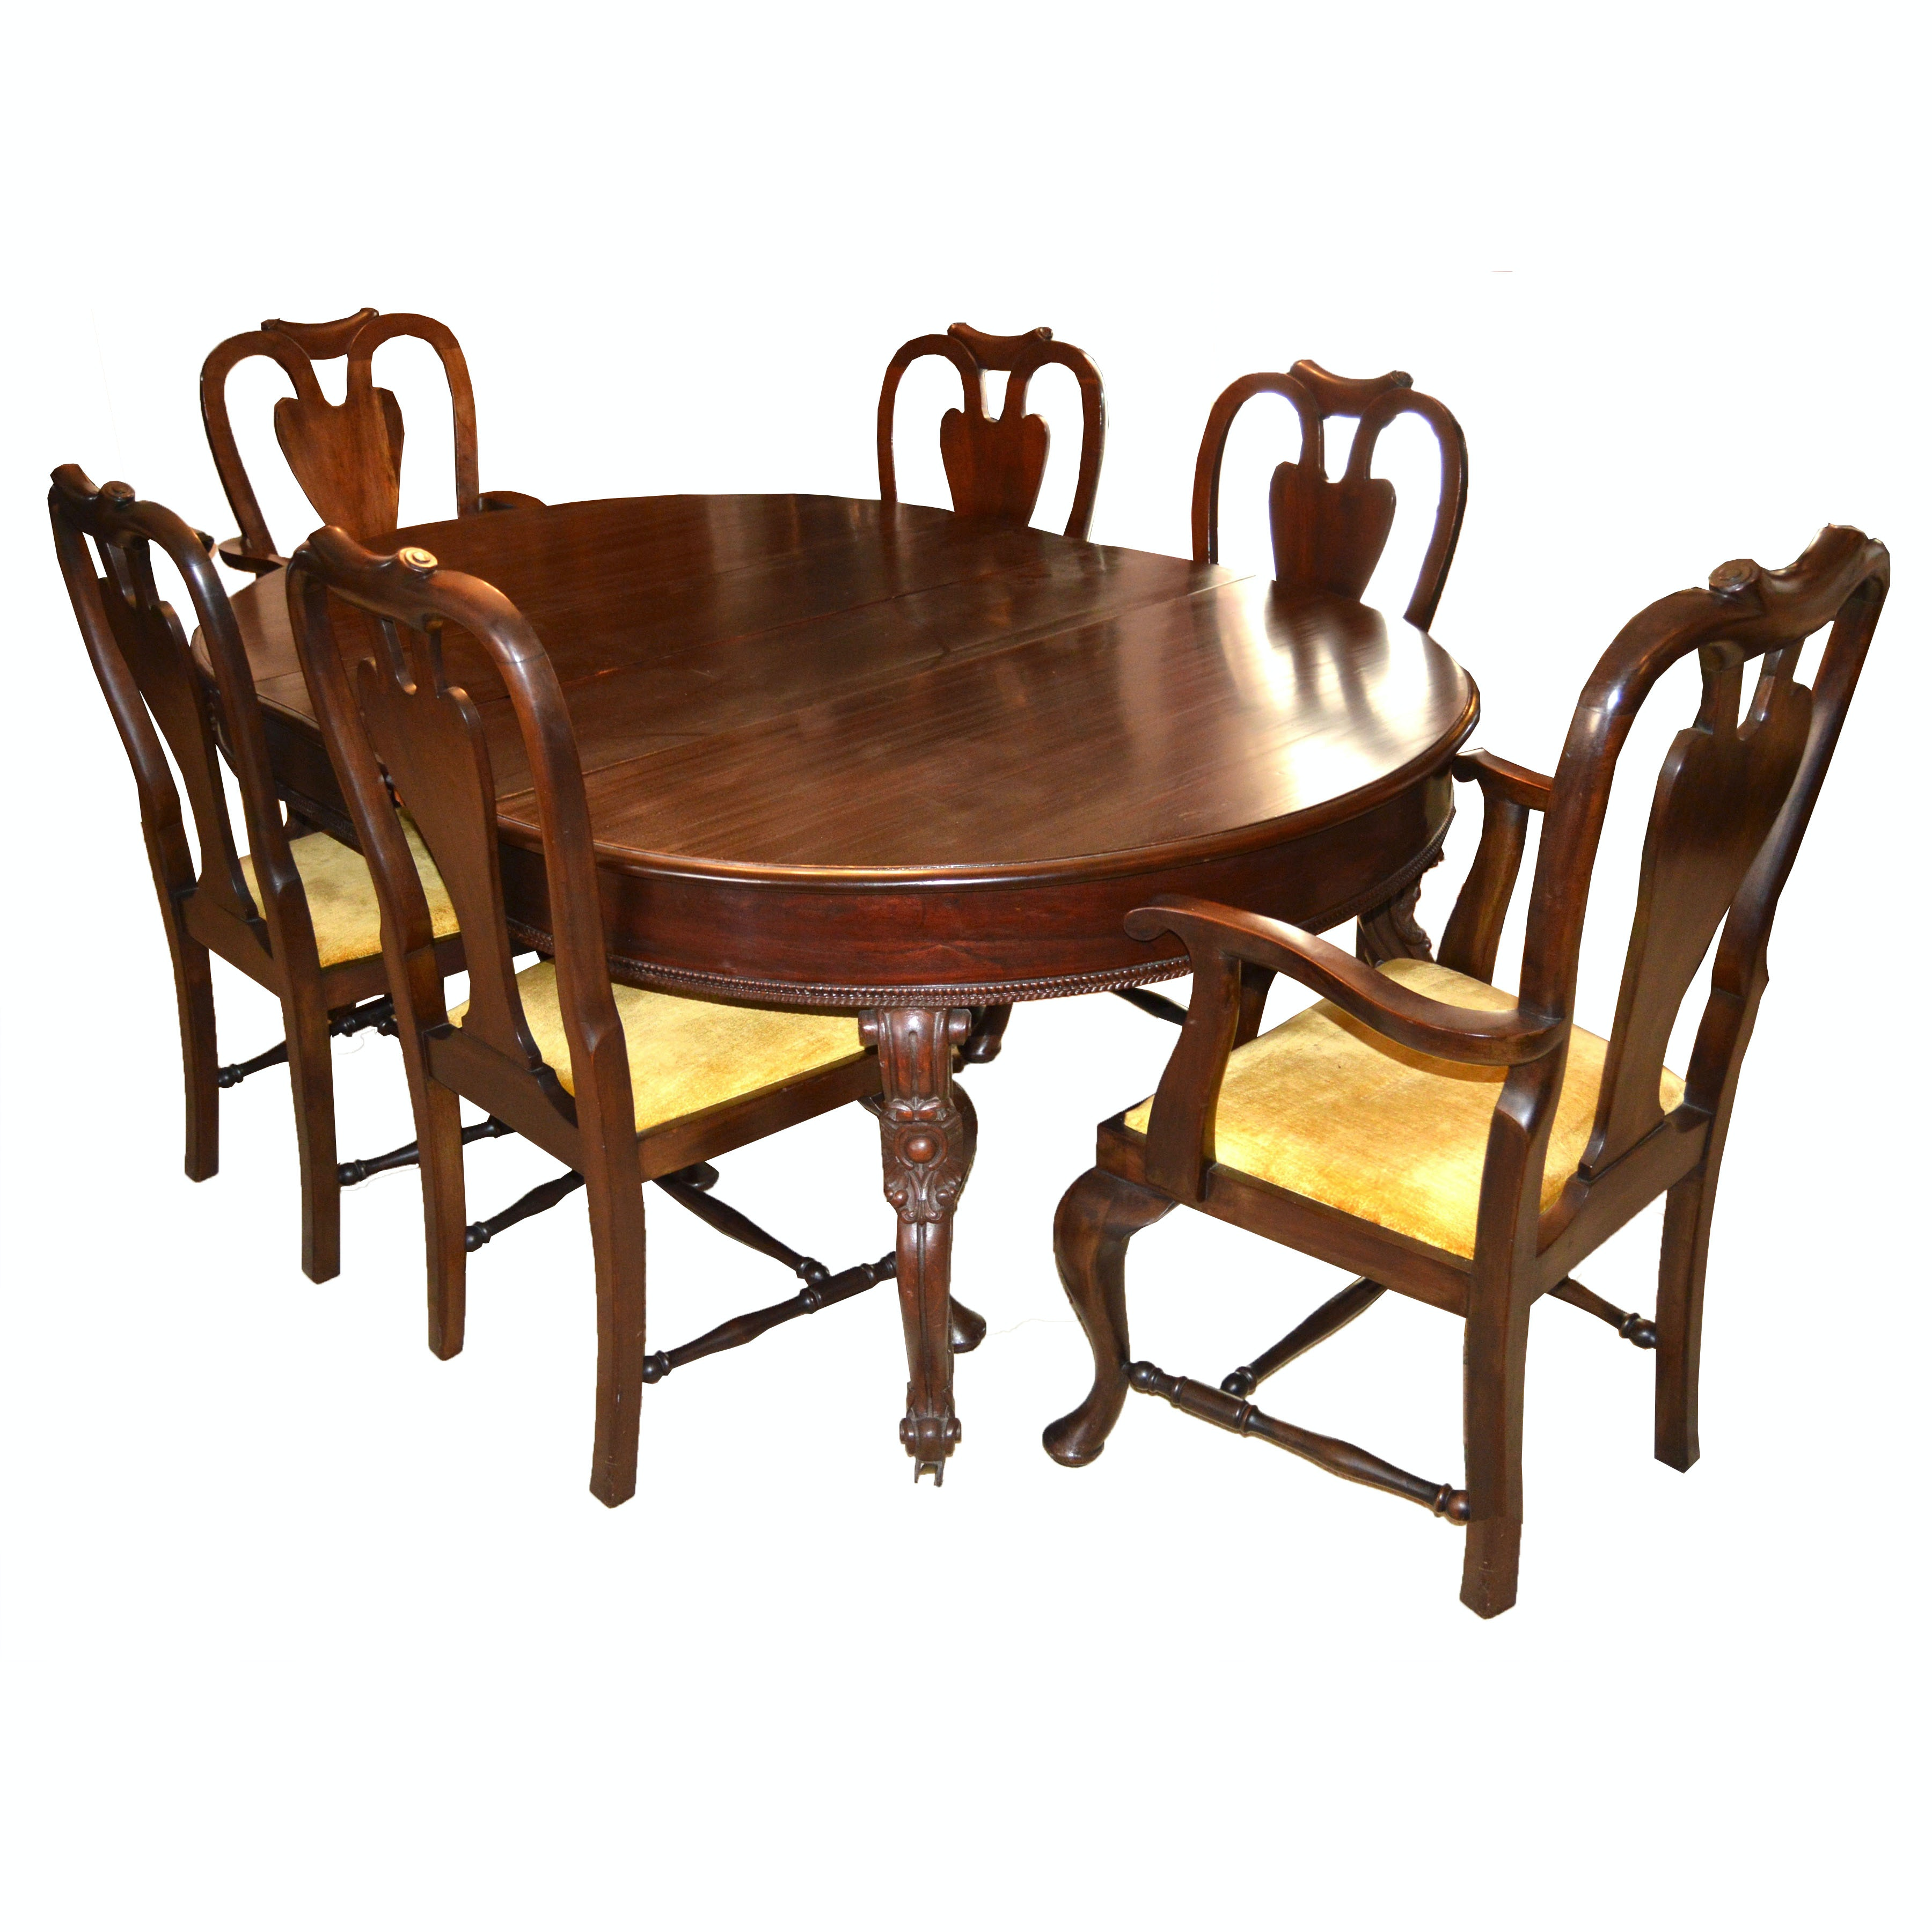 Antique Mahogany Chippendale Dining Table and Eight Chairs  : kajdncajpgixlibrb 11 from www.ebth.com size 880 x 906 jpeg 108kB